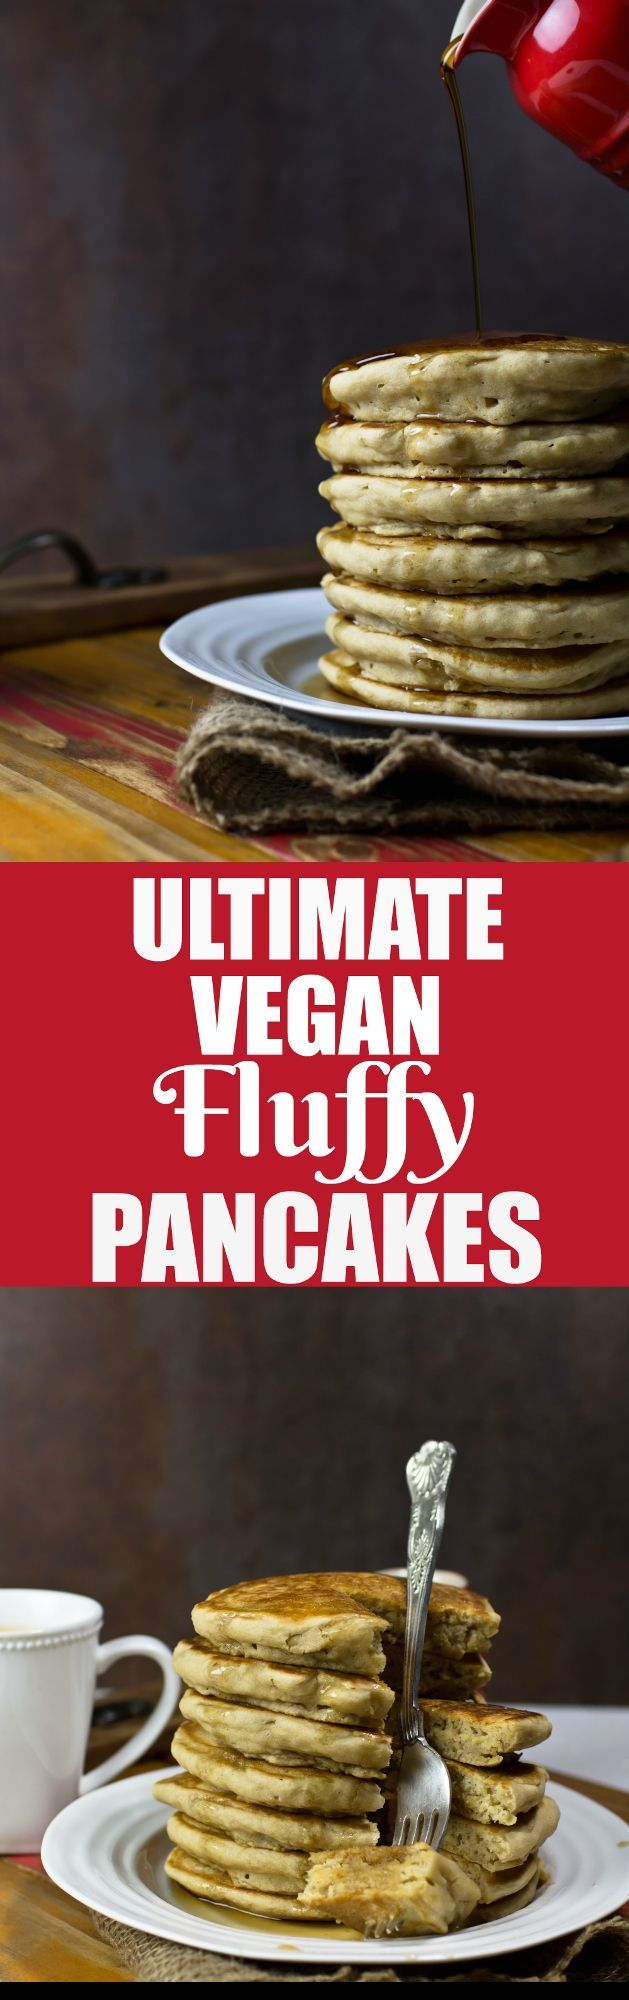 The Ultimate Fluffy Vegan Pancakes right here! Easy and fast to make. These are oil-free, JUST 7 ingredients, made in 1 BOWL, super soft, incredibly fluffy and sure to please anybody, vegan or not! These will, without a doubt, become a regular in your household! via @thevegan8